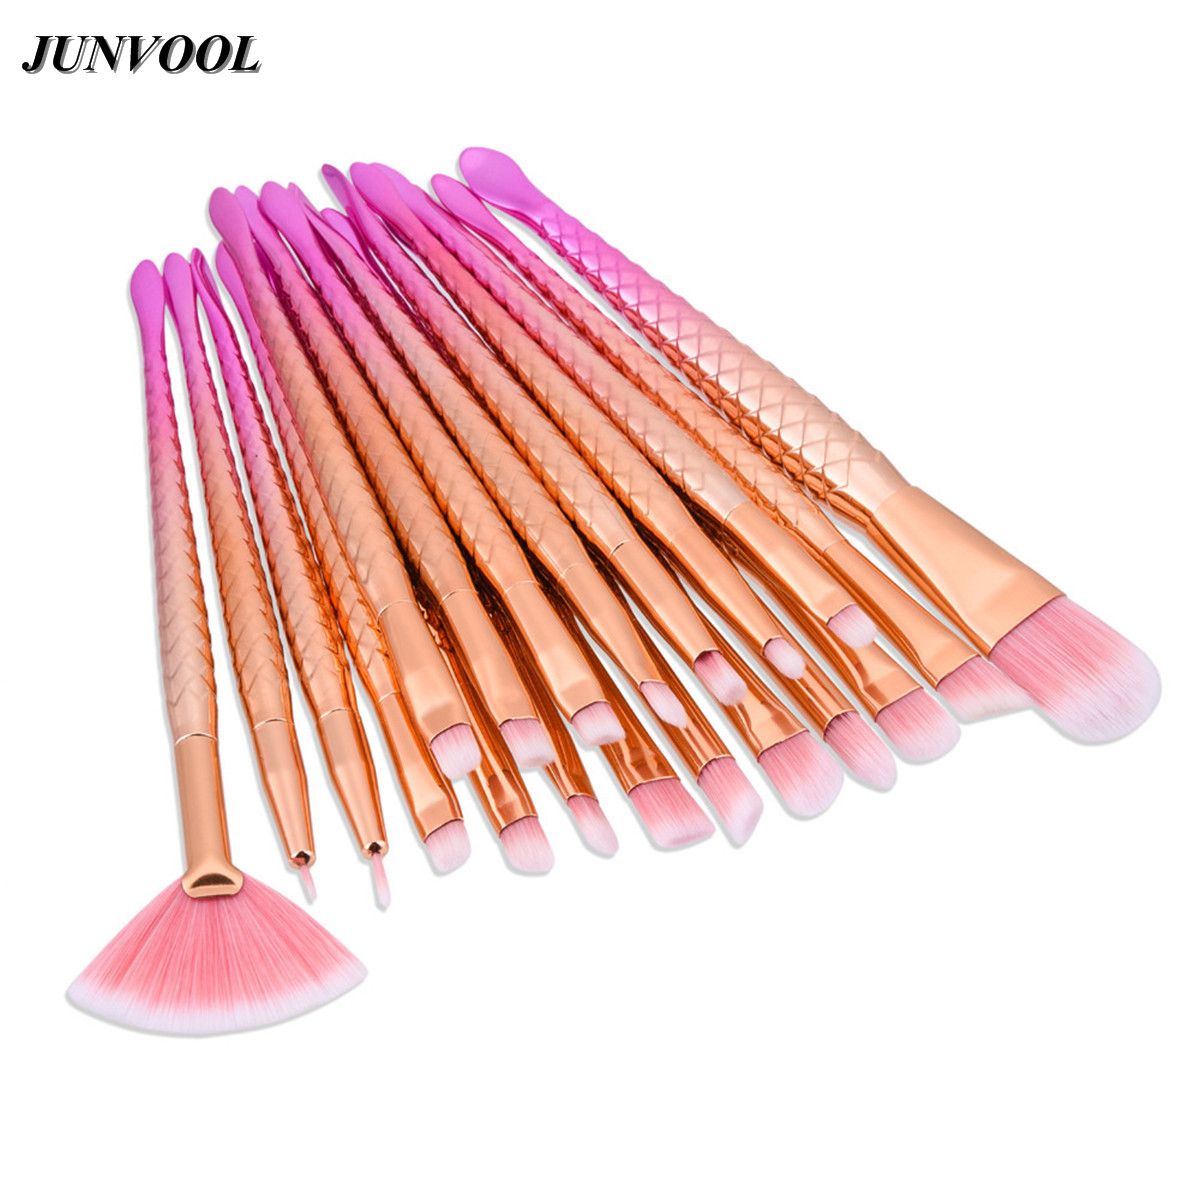 Fan Rose Gold Eyes Makeup Brushes Professional 20Pcs Pink Hair Eye Shadow Foundation Eyebrow Brush Cosmetic Make Up Brush Set 8pcs rose gold makeup brushes eye shadow powder blush foundation brush 2pc sponge puff make up brushes pincel maquiagem cosmetic